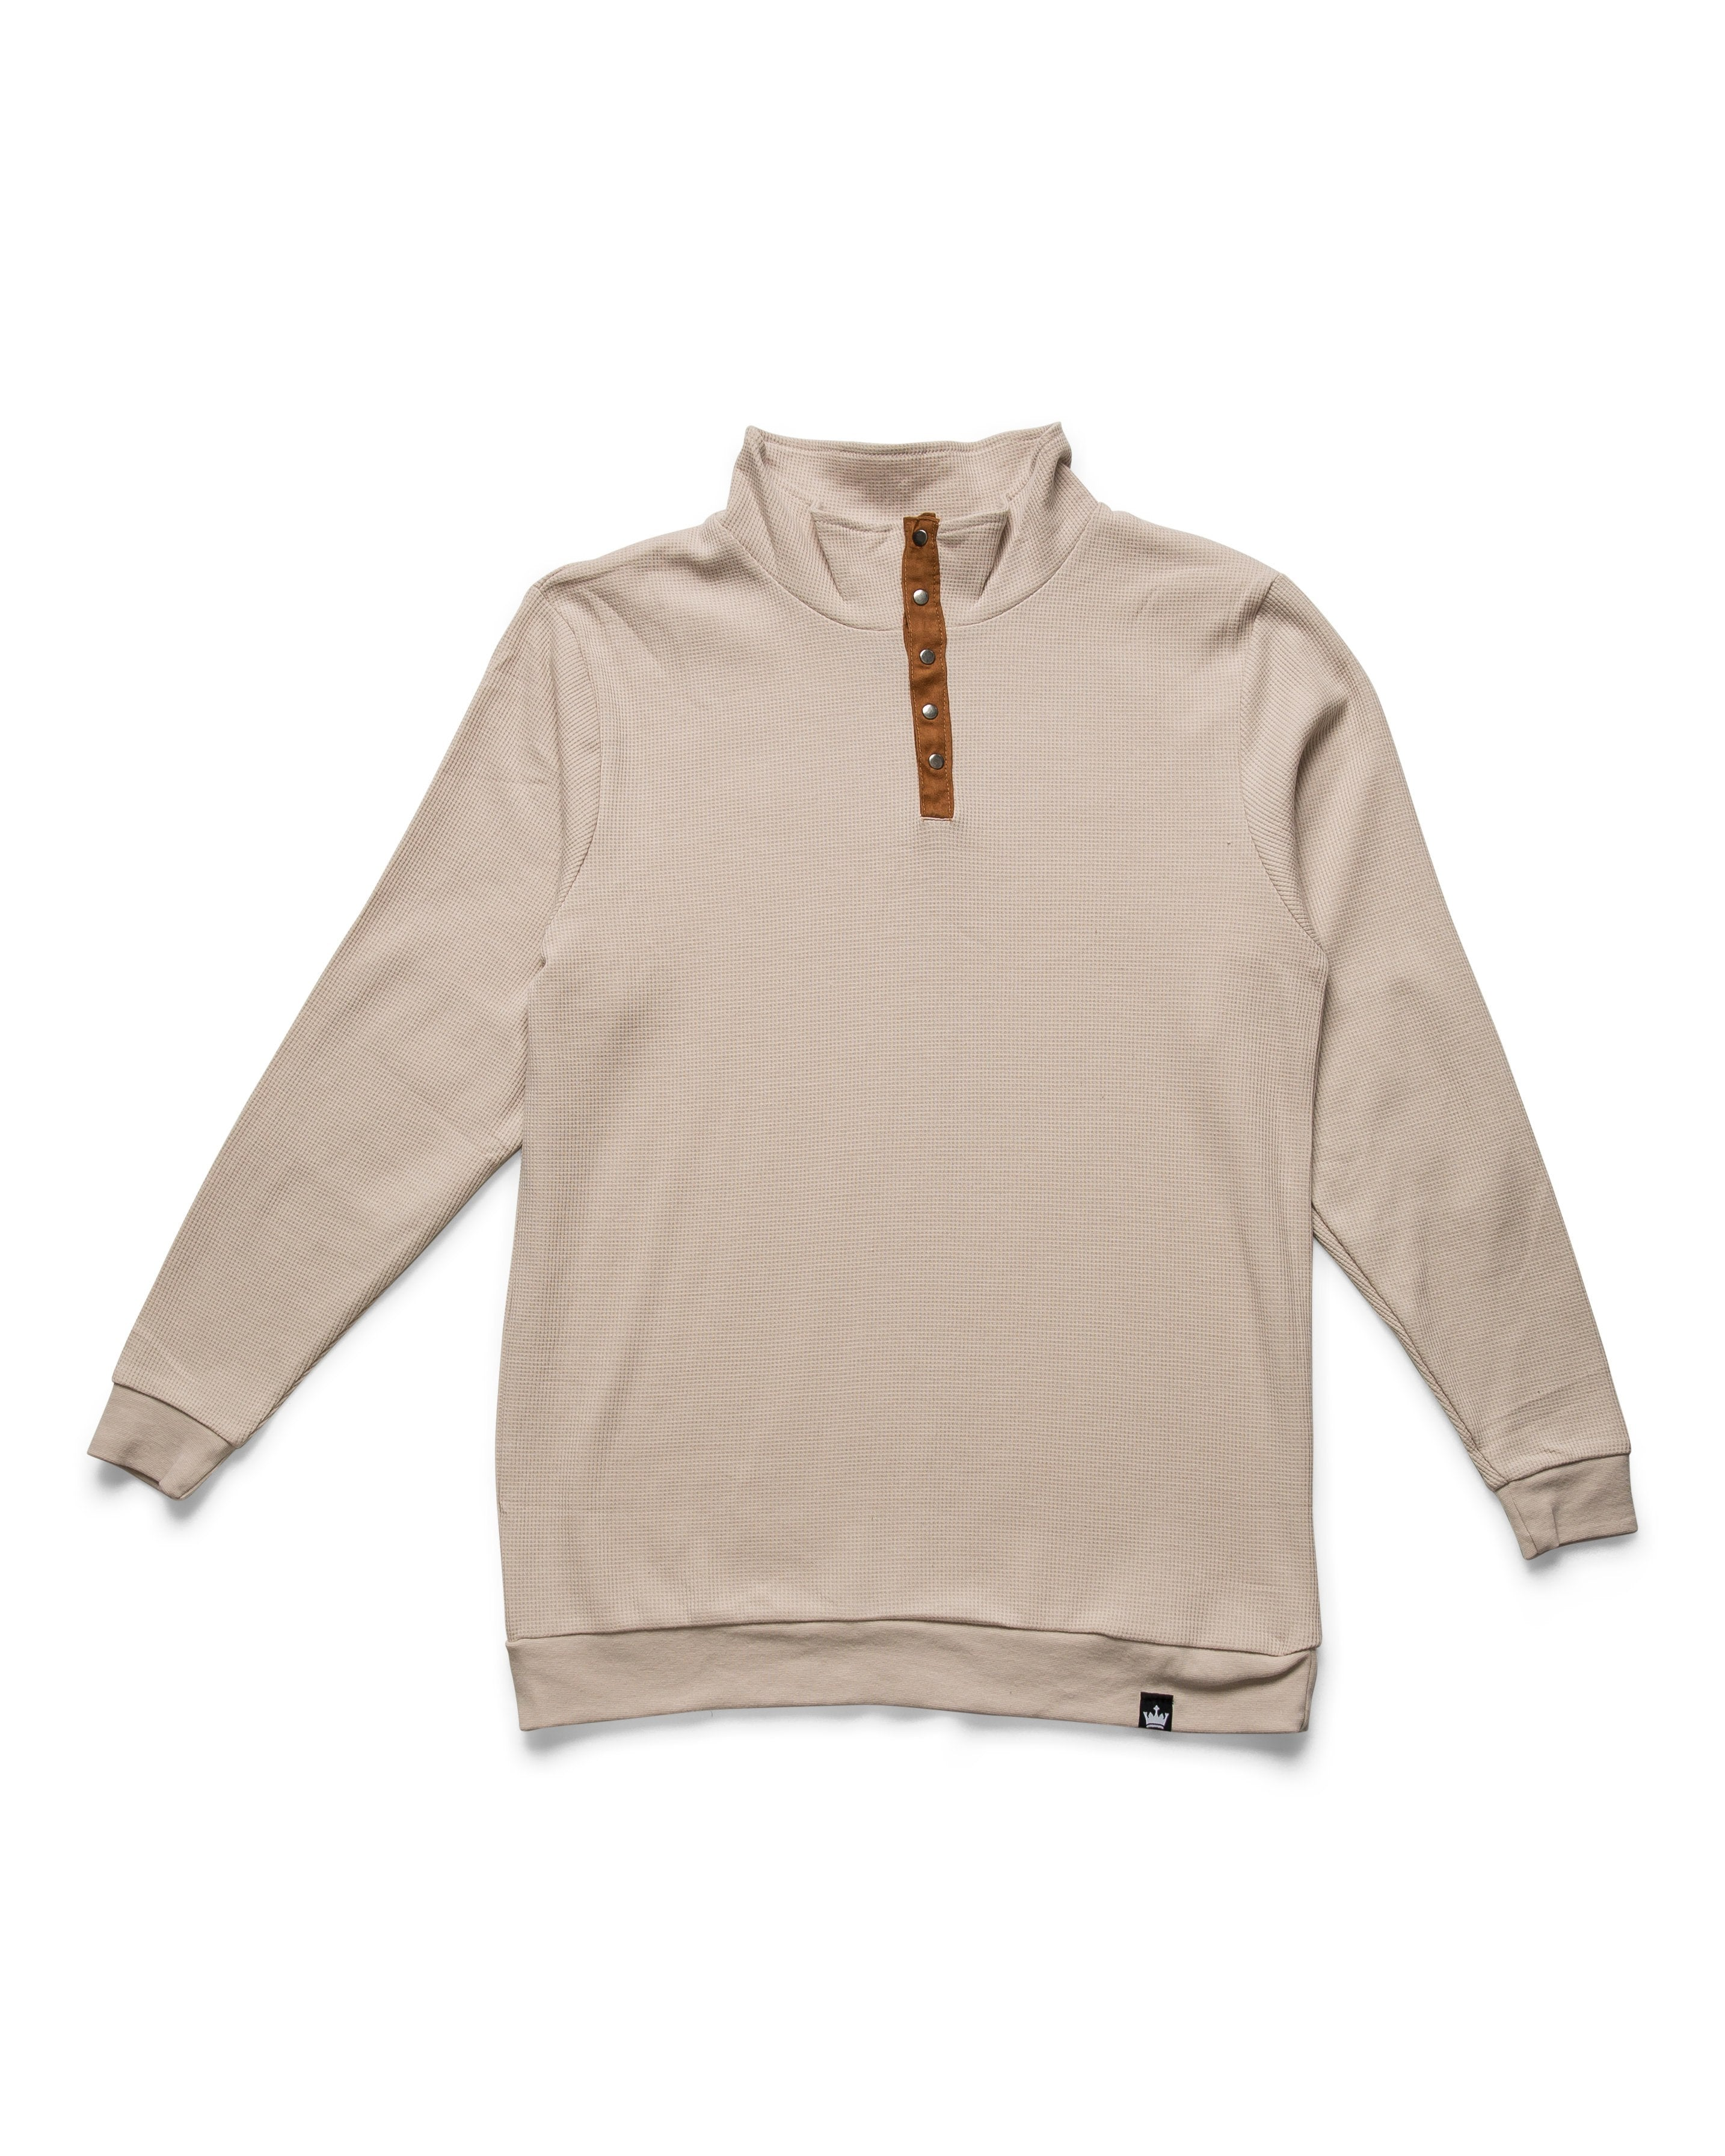 thsahenm-tn-tan-thermal-suede-accent-men-s-henley-front.jpg